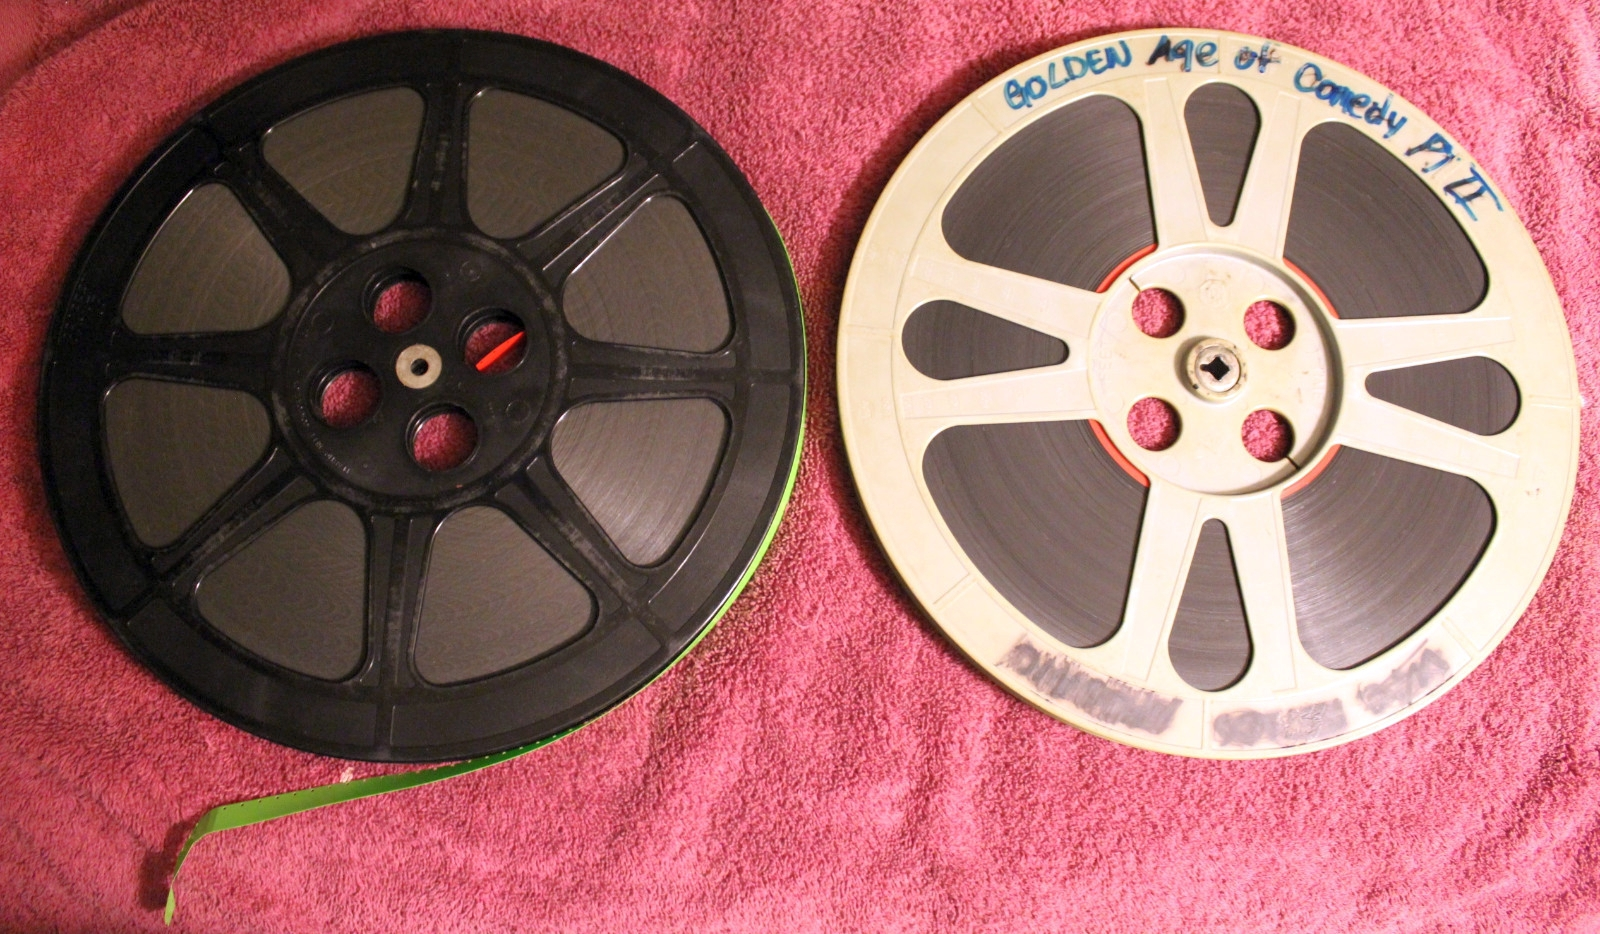 the golden age of comedy reels 00